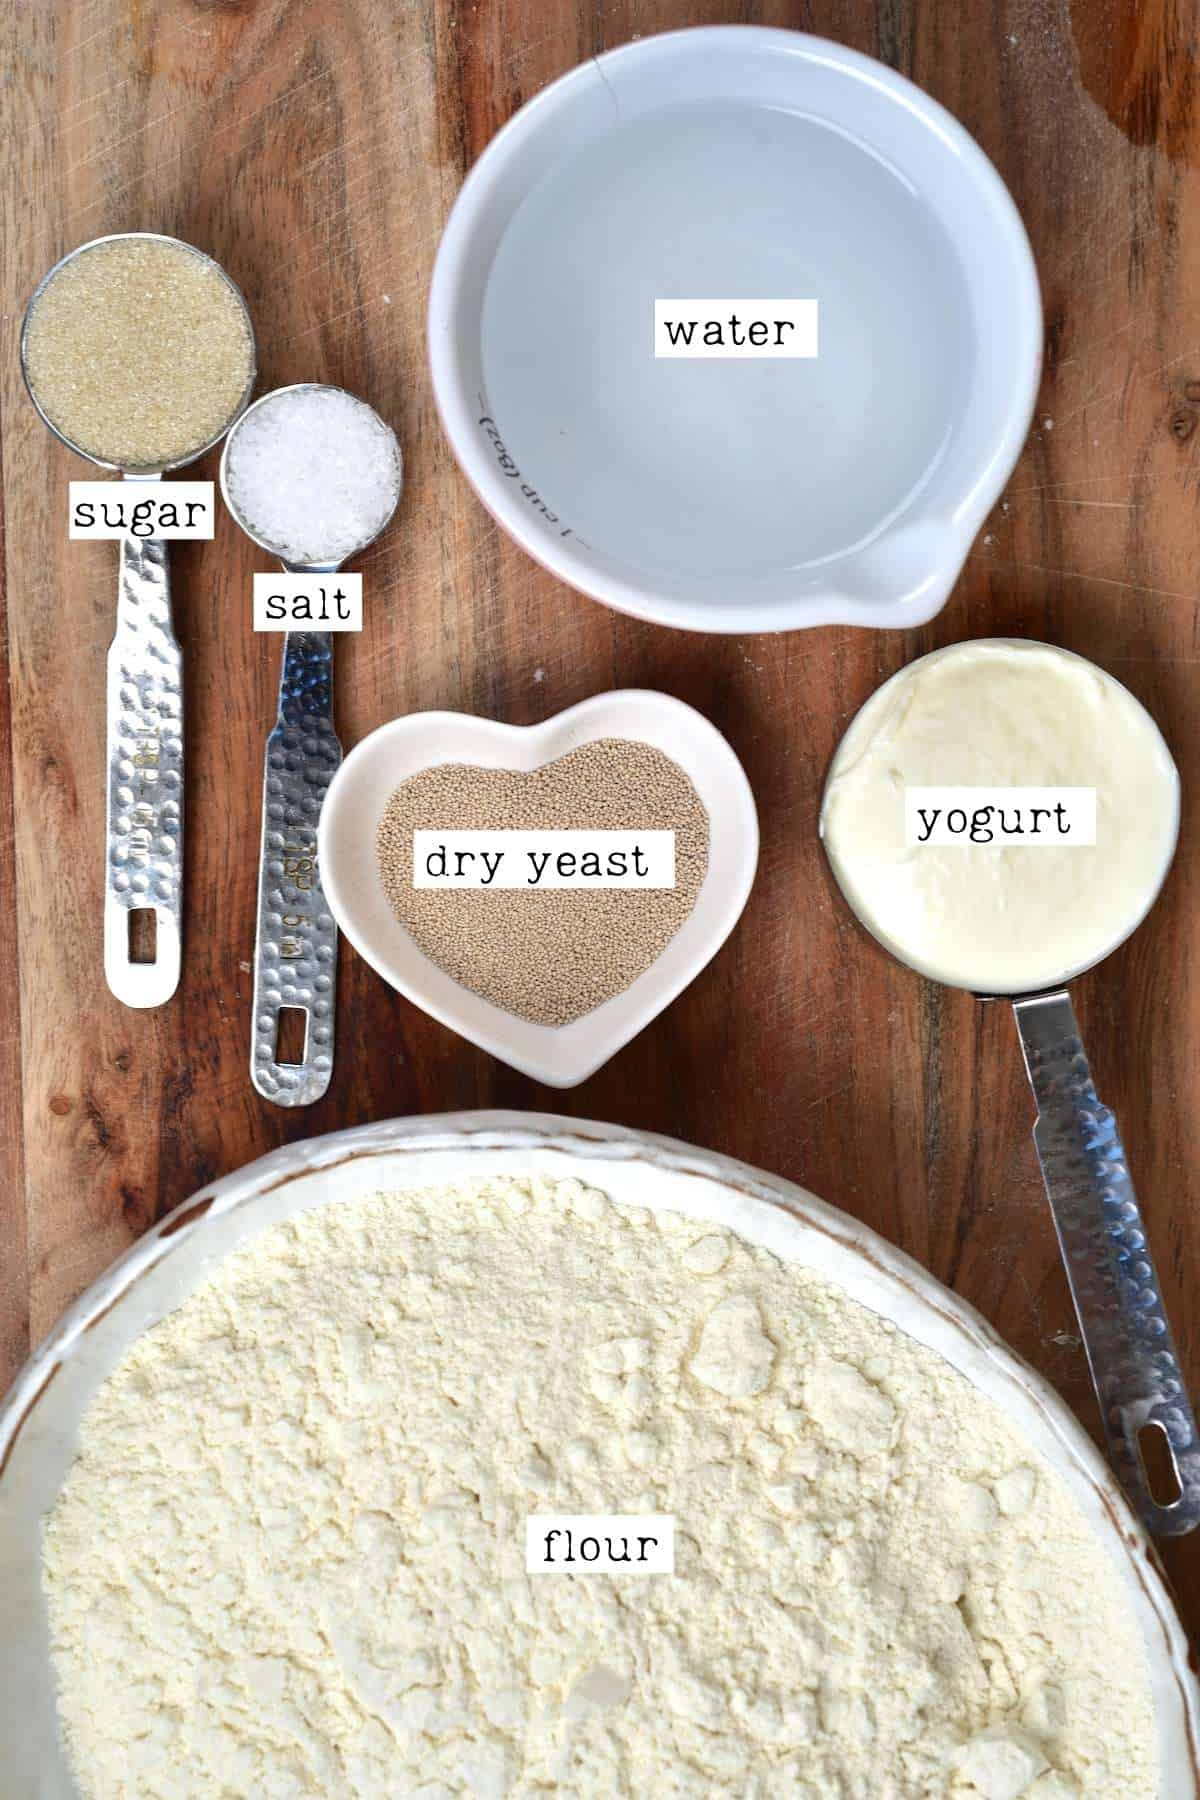 Ingredients for Middle Eastern Bread/ manakish dough